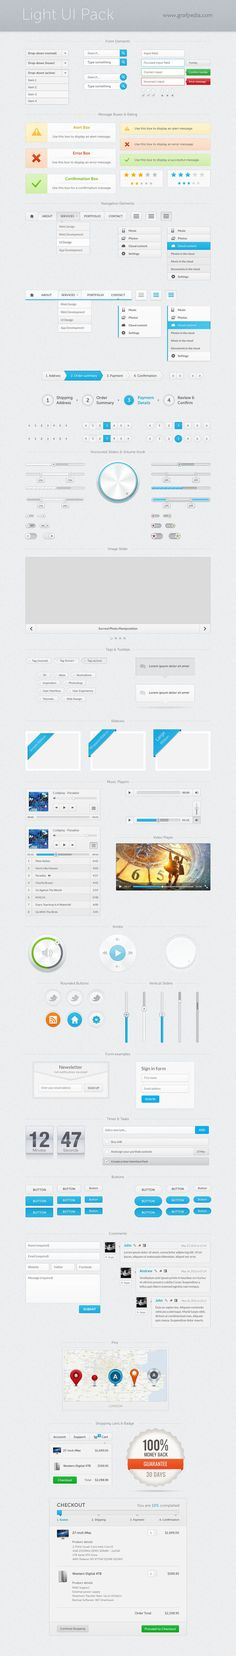 AWESOME LIGHT UI PACK http://www.wordpressfamily.com/awesome-light-ui-pack/